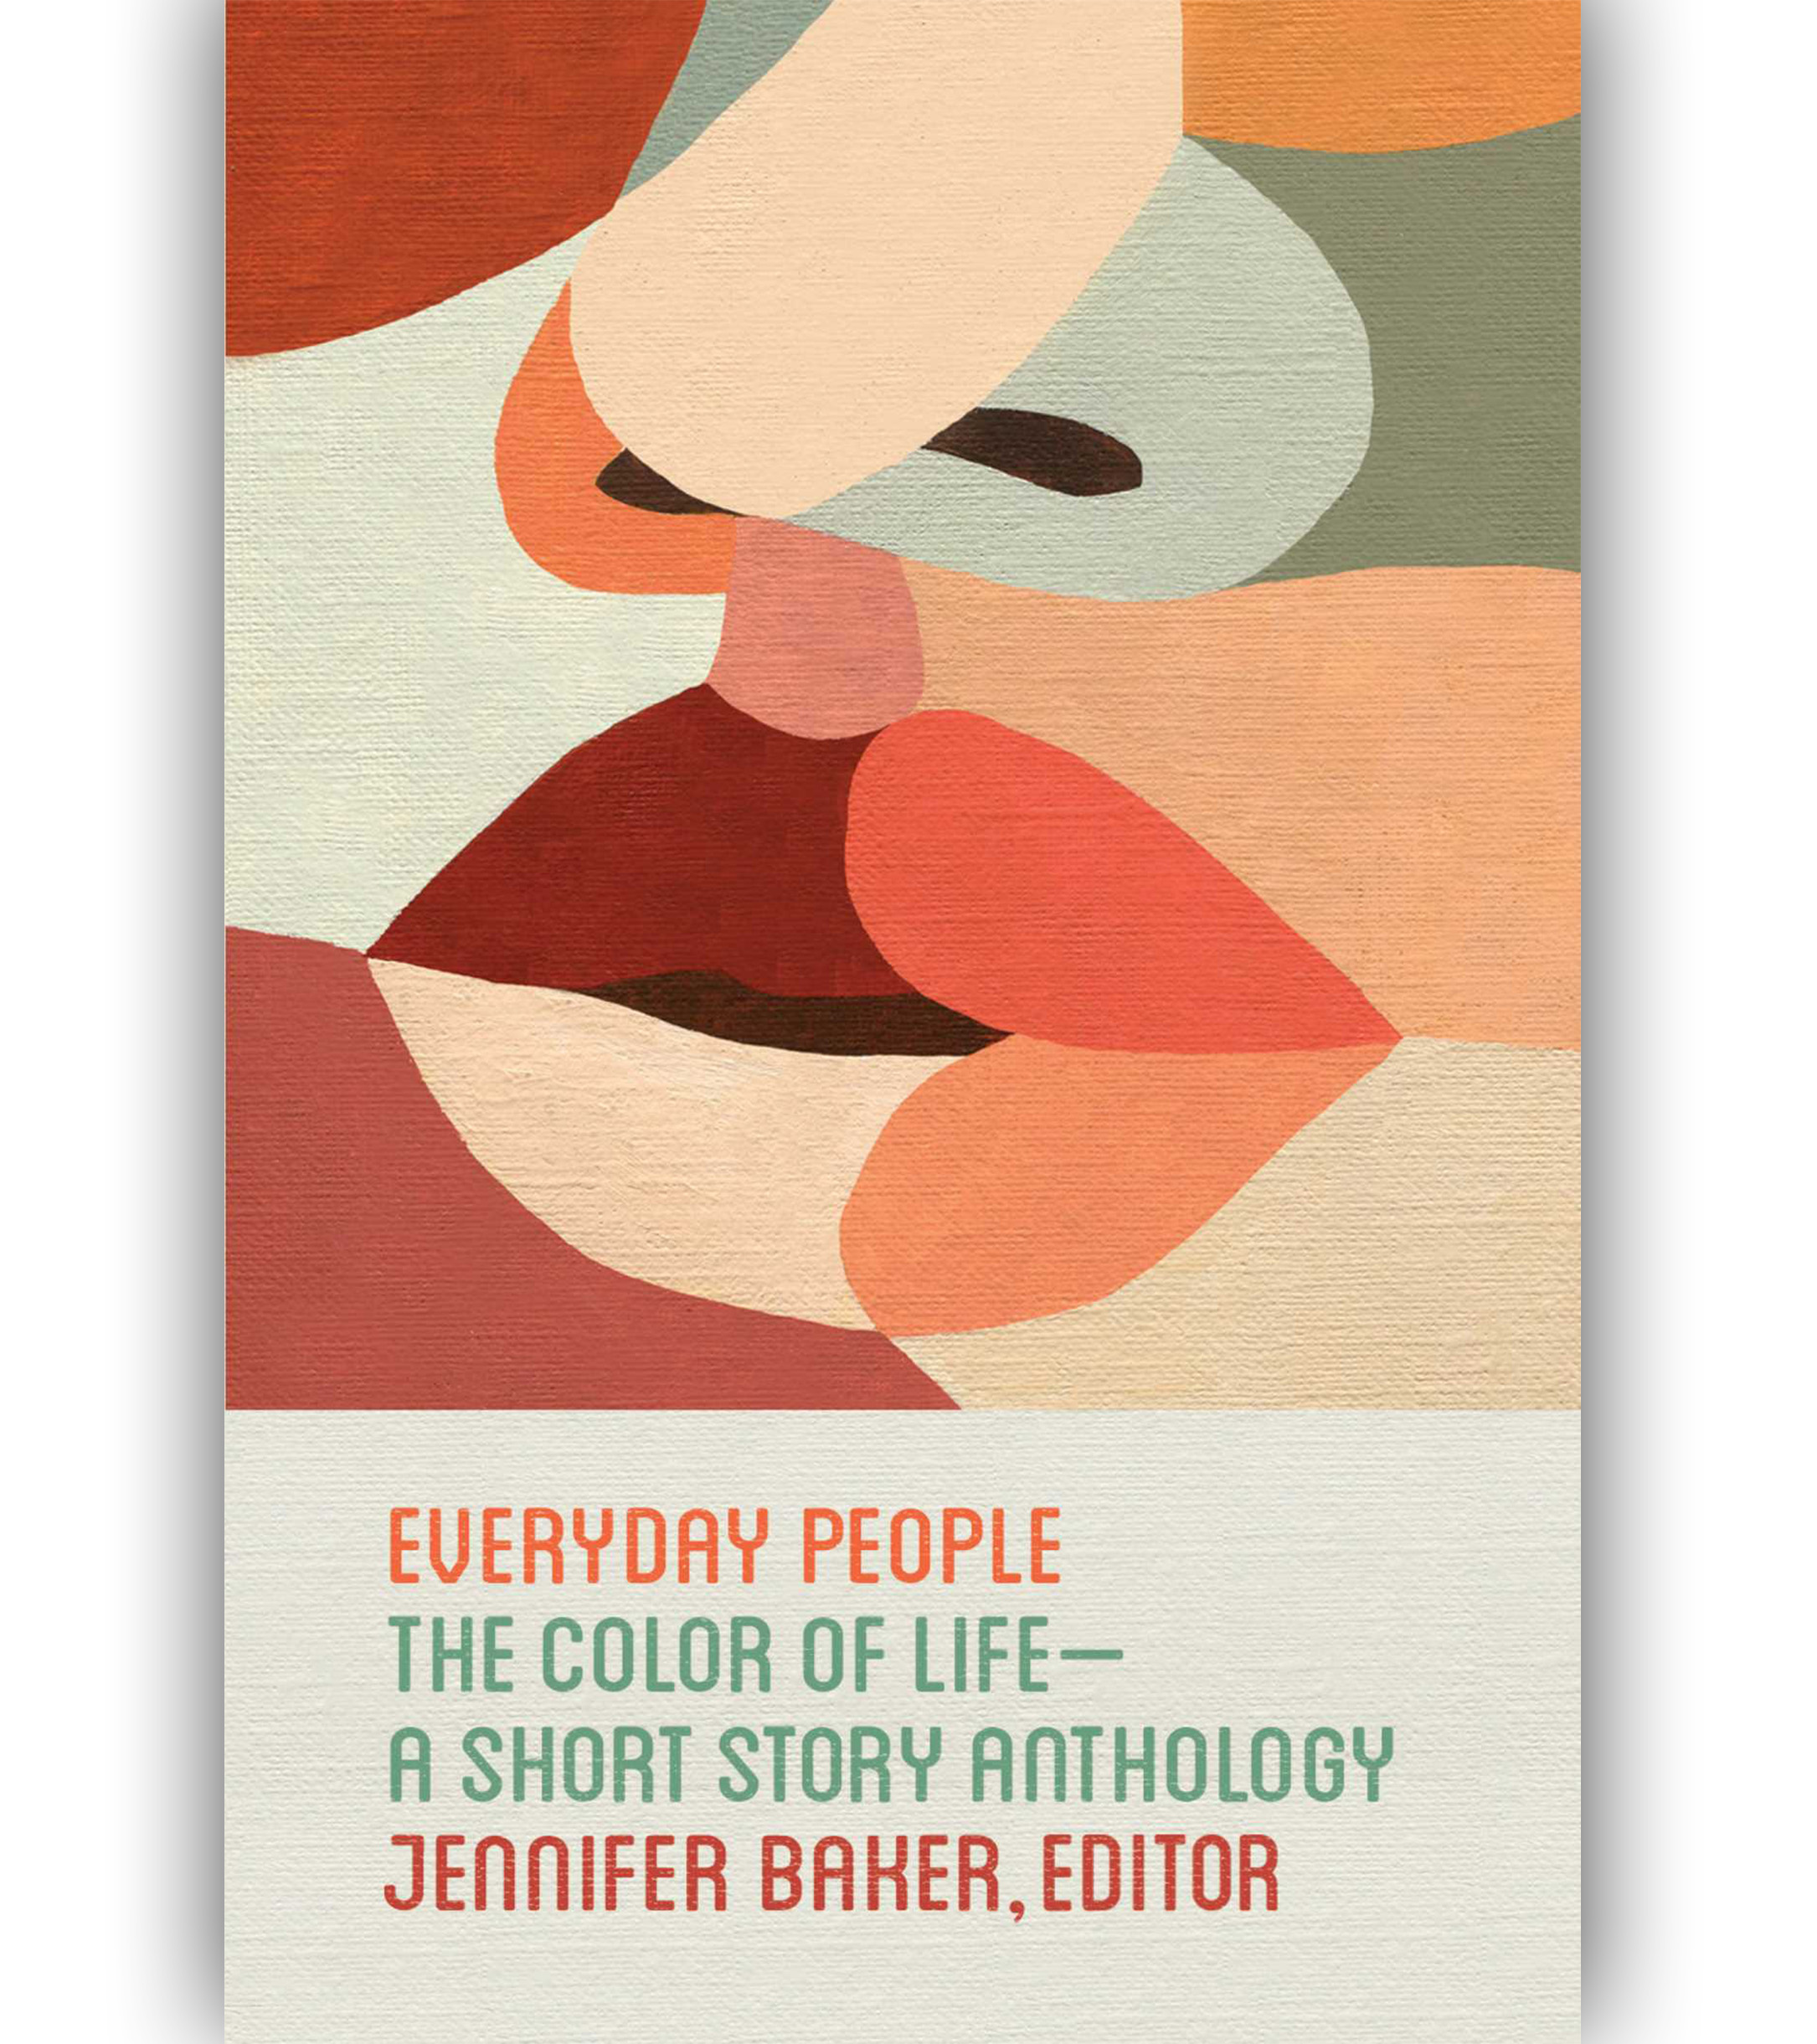 Everyday People: The Color Of Life By Jennifer N. Baker Book Cover